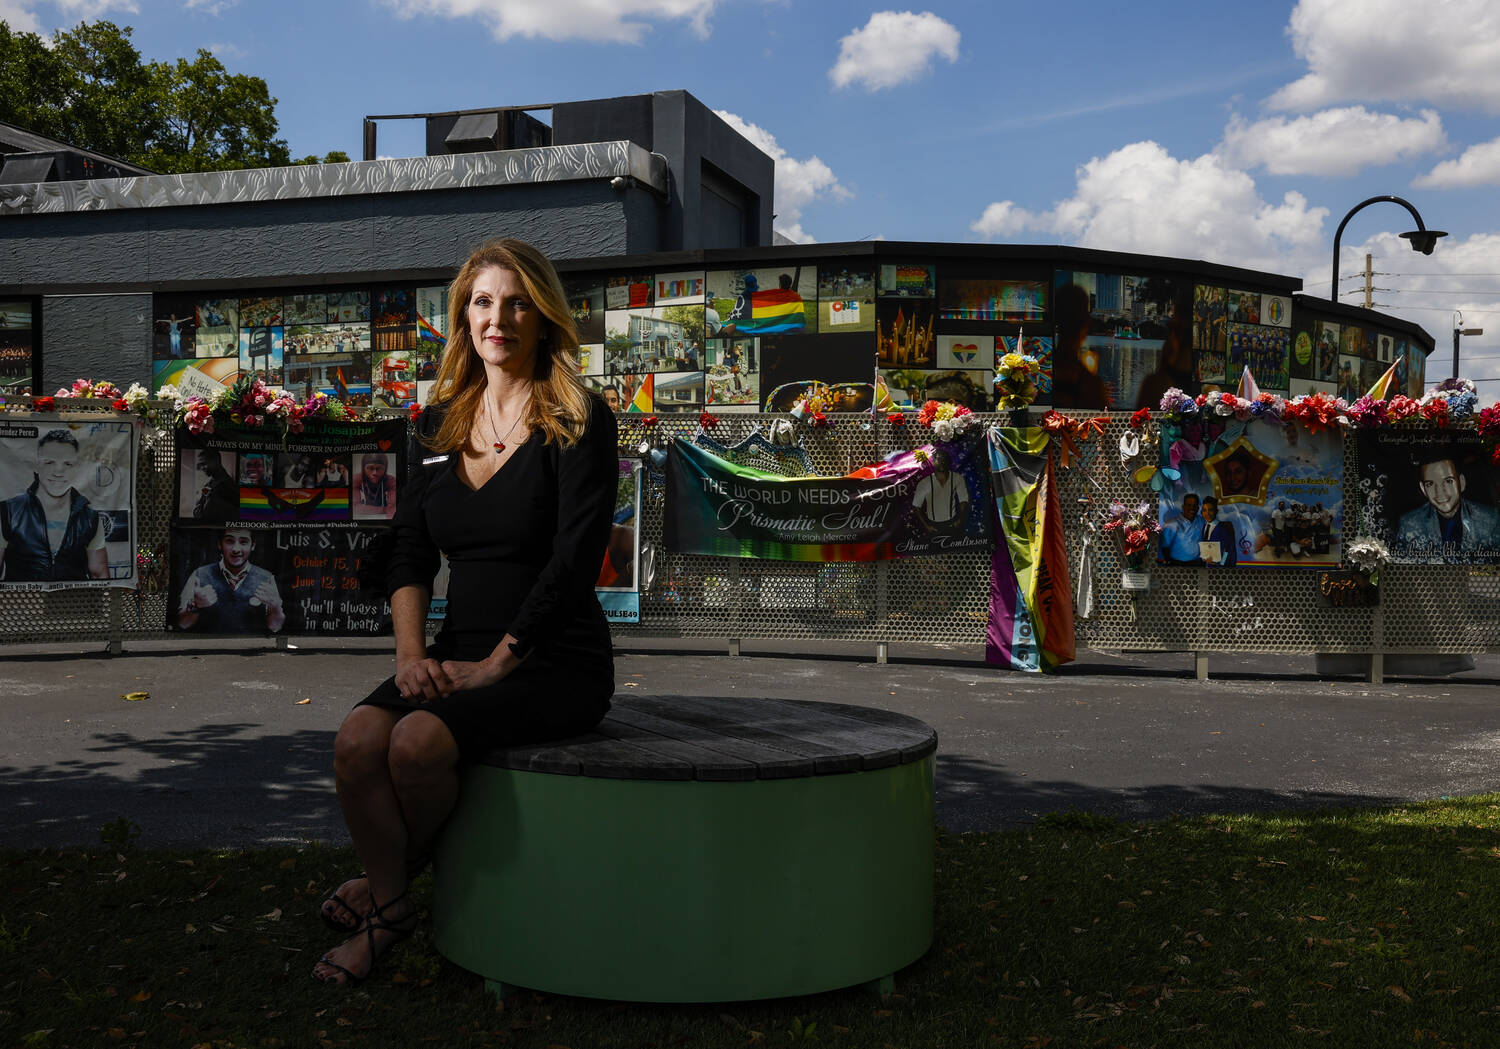 A woman dressed in black sits looking into the camera, Pulse memorials behind her.